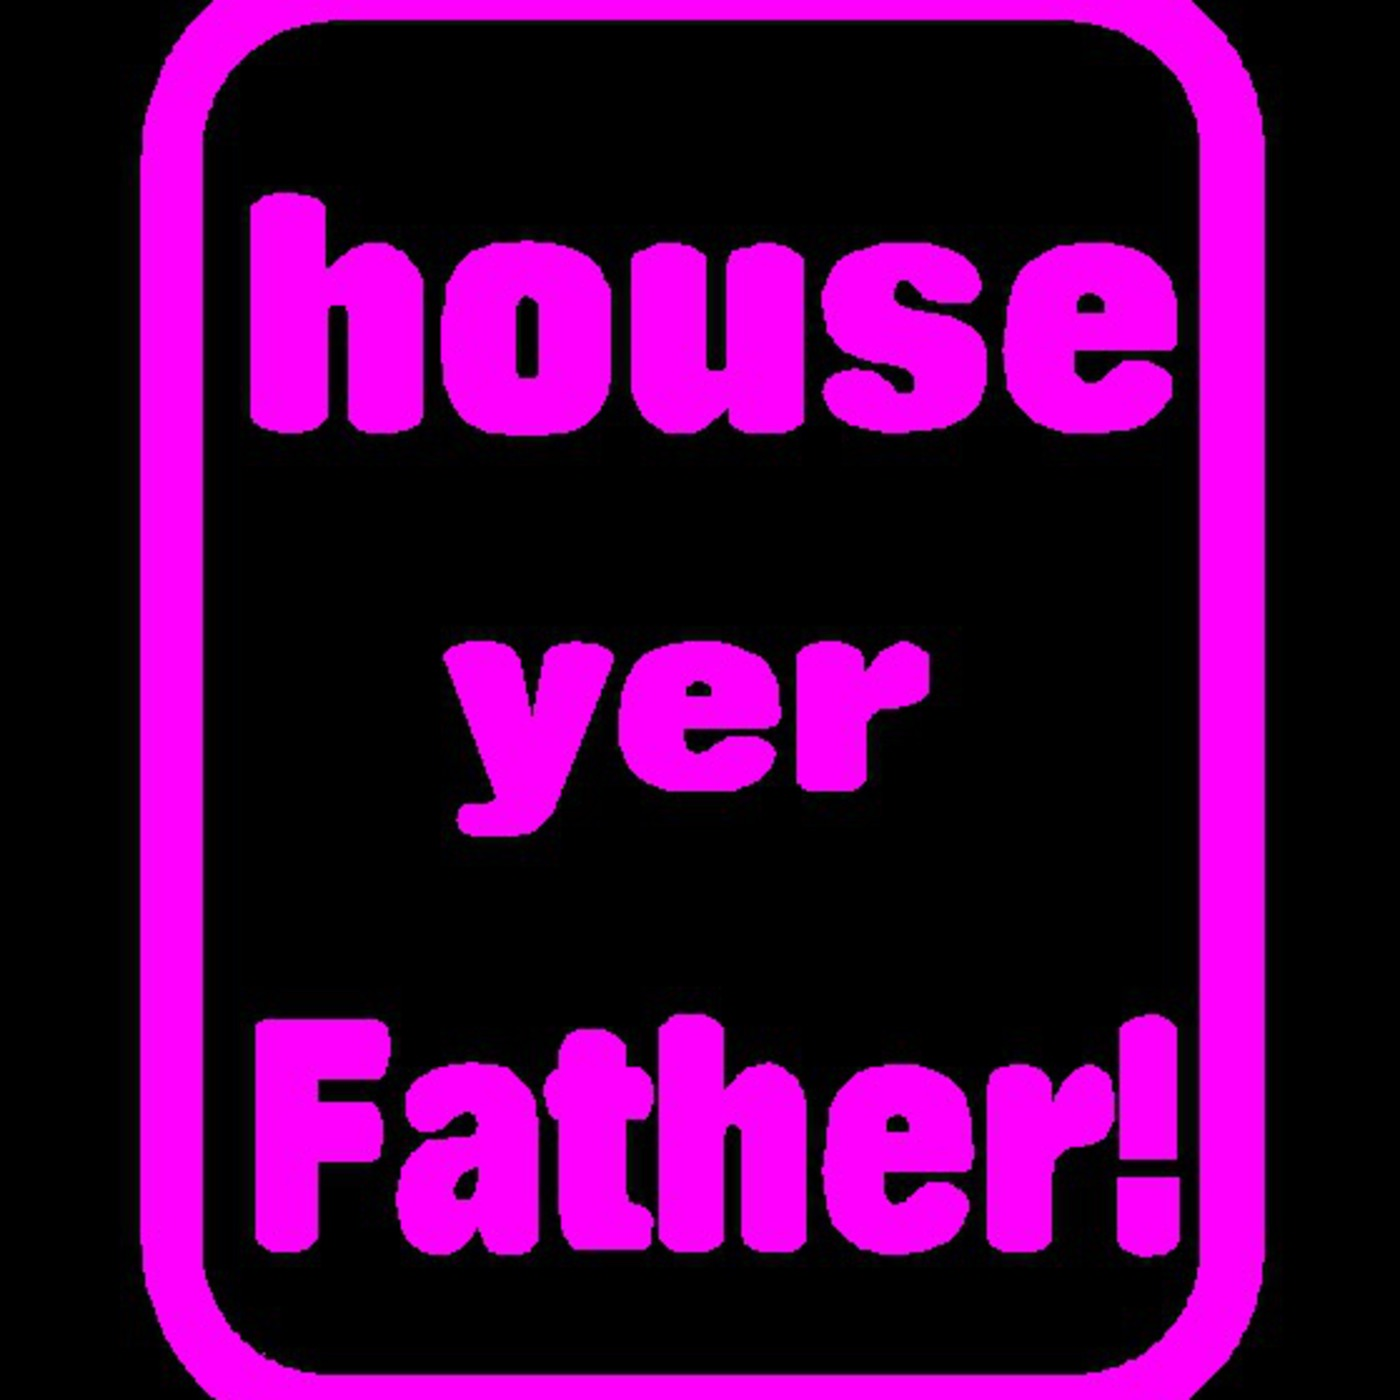 house yer father Podcast